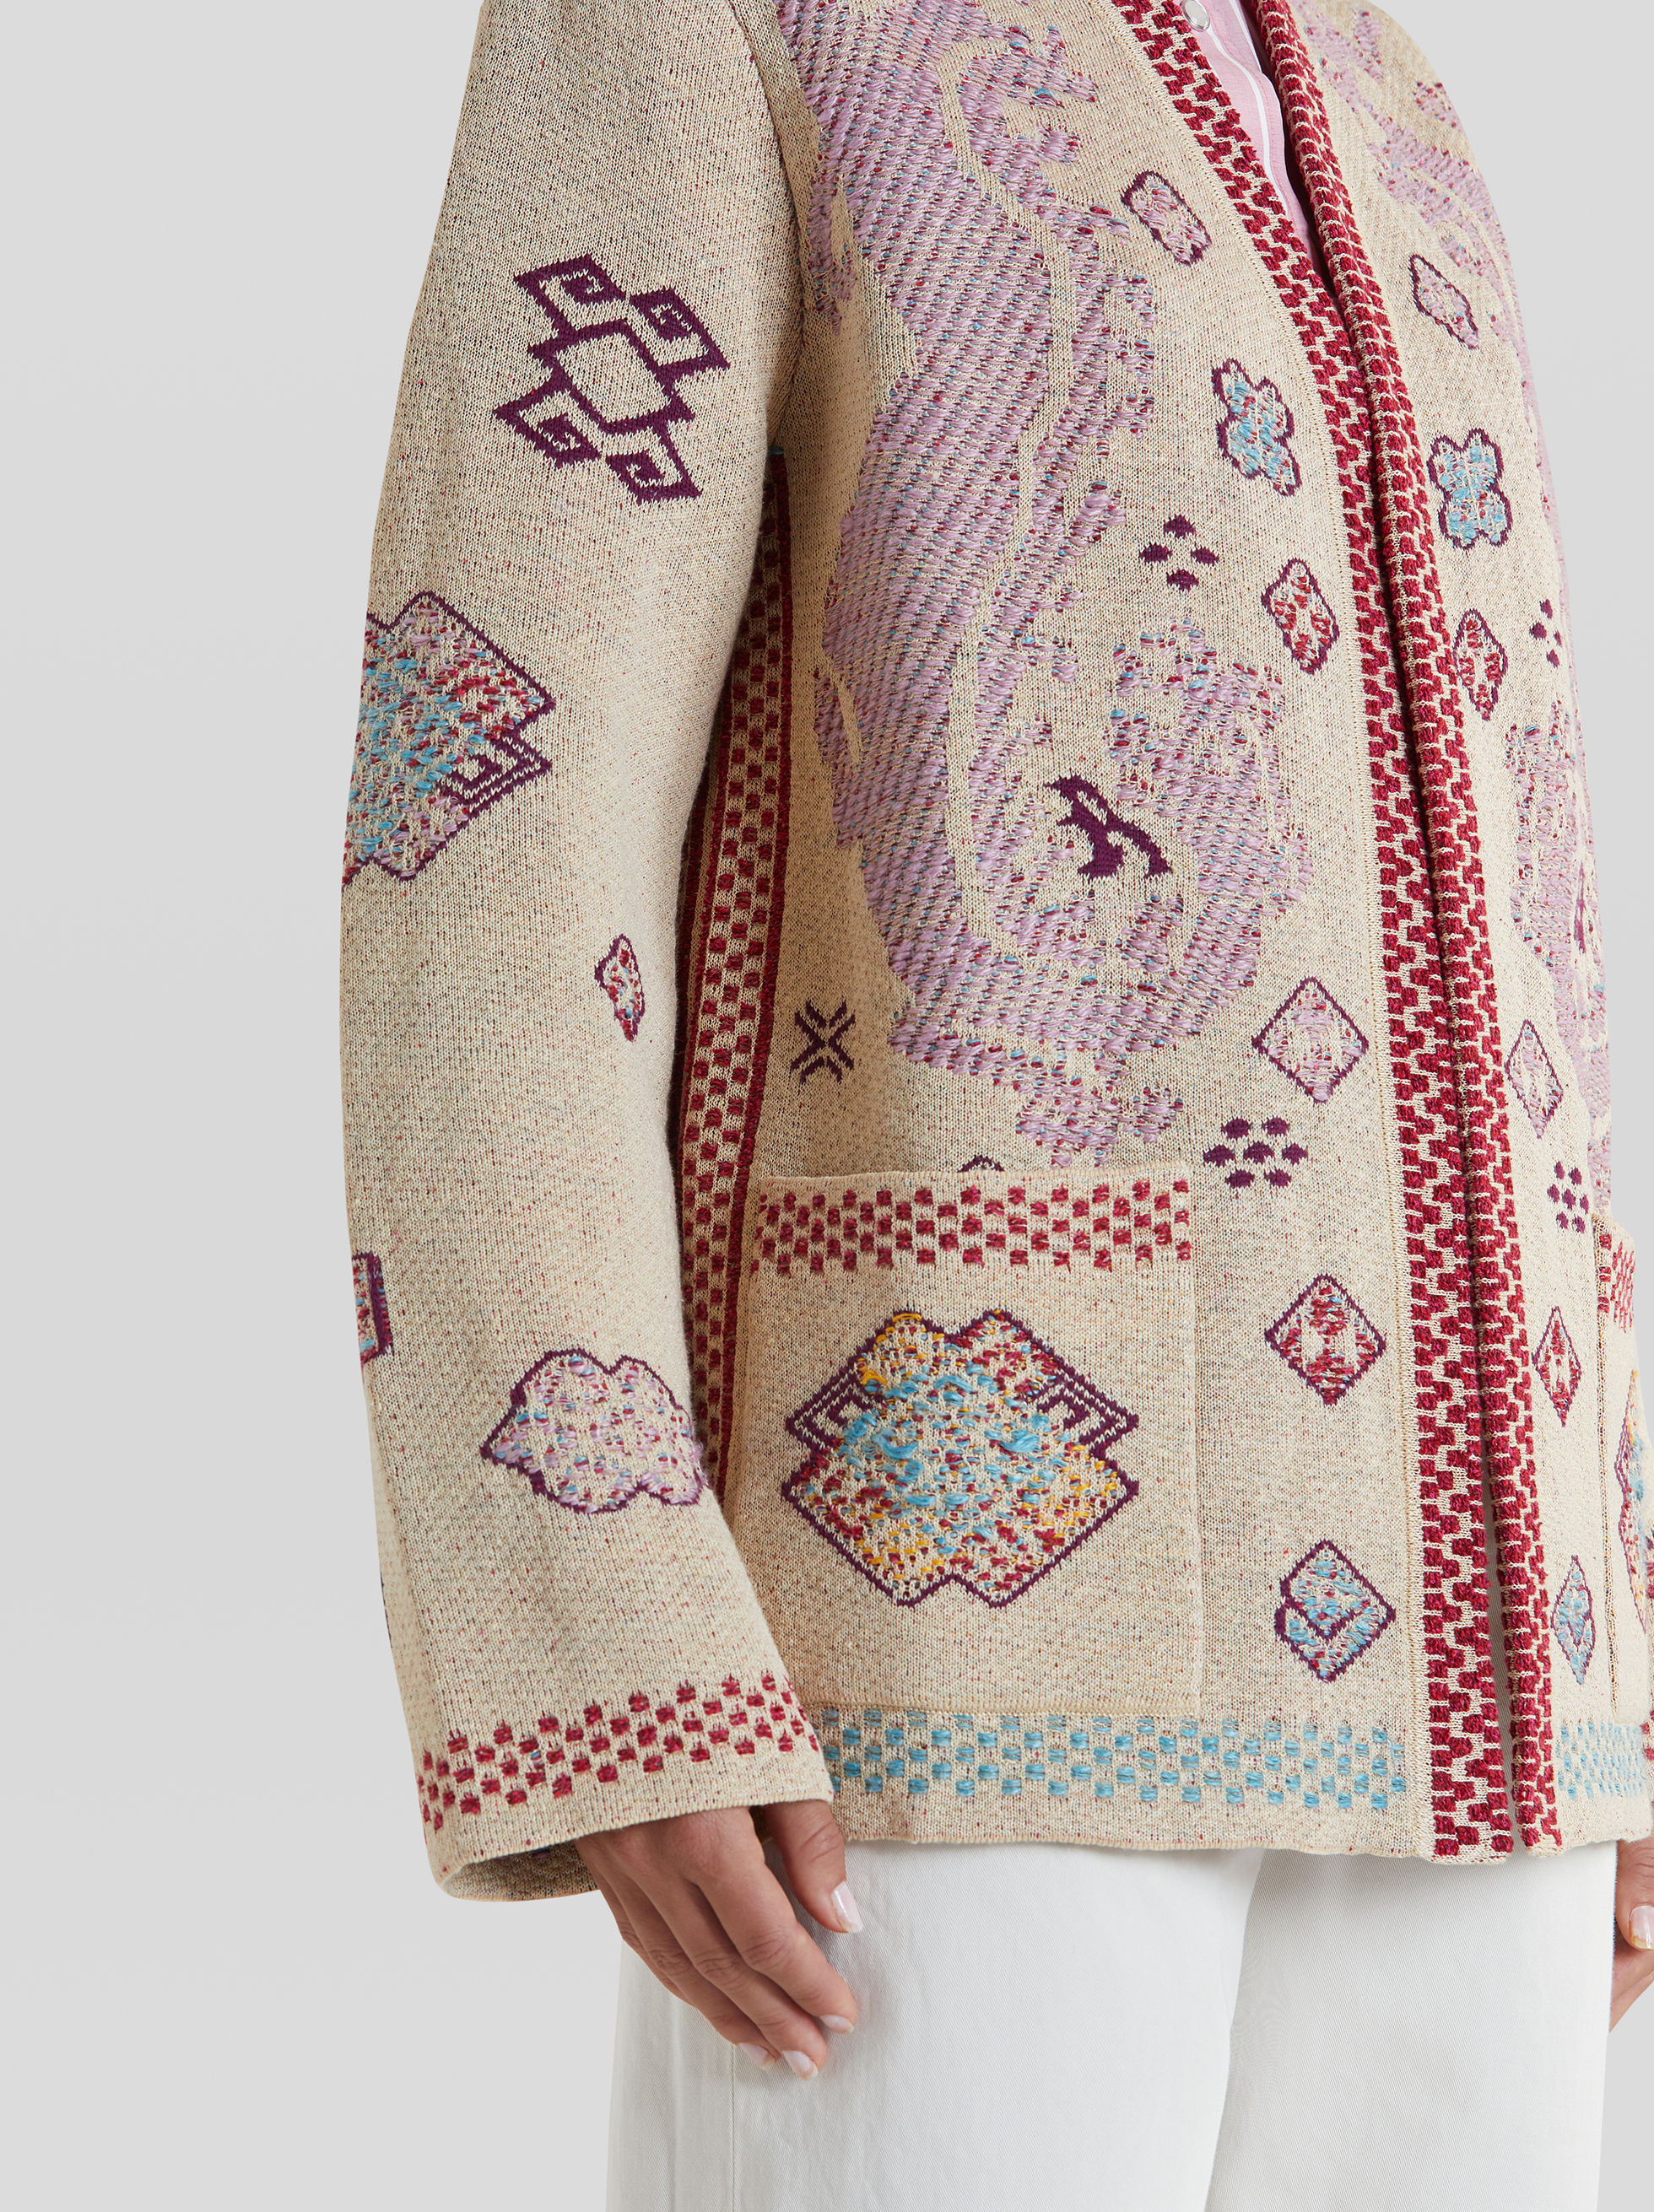 EMBROIDERY-EFFECT JACQUARD CARDIGAN